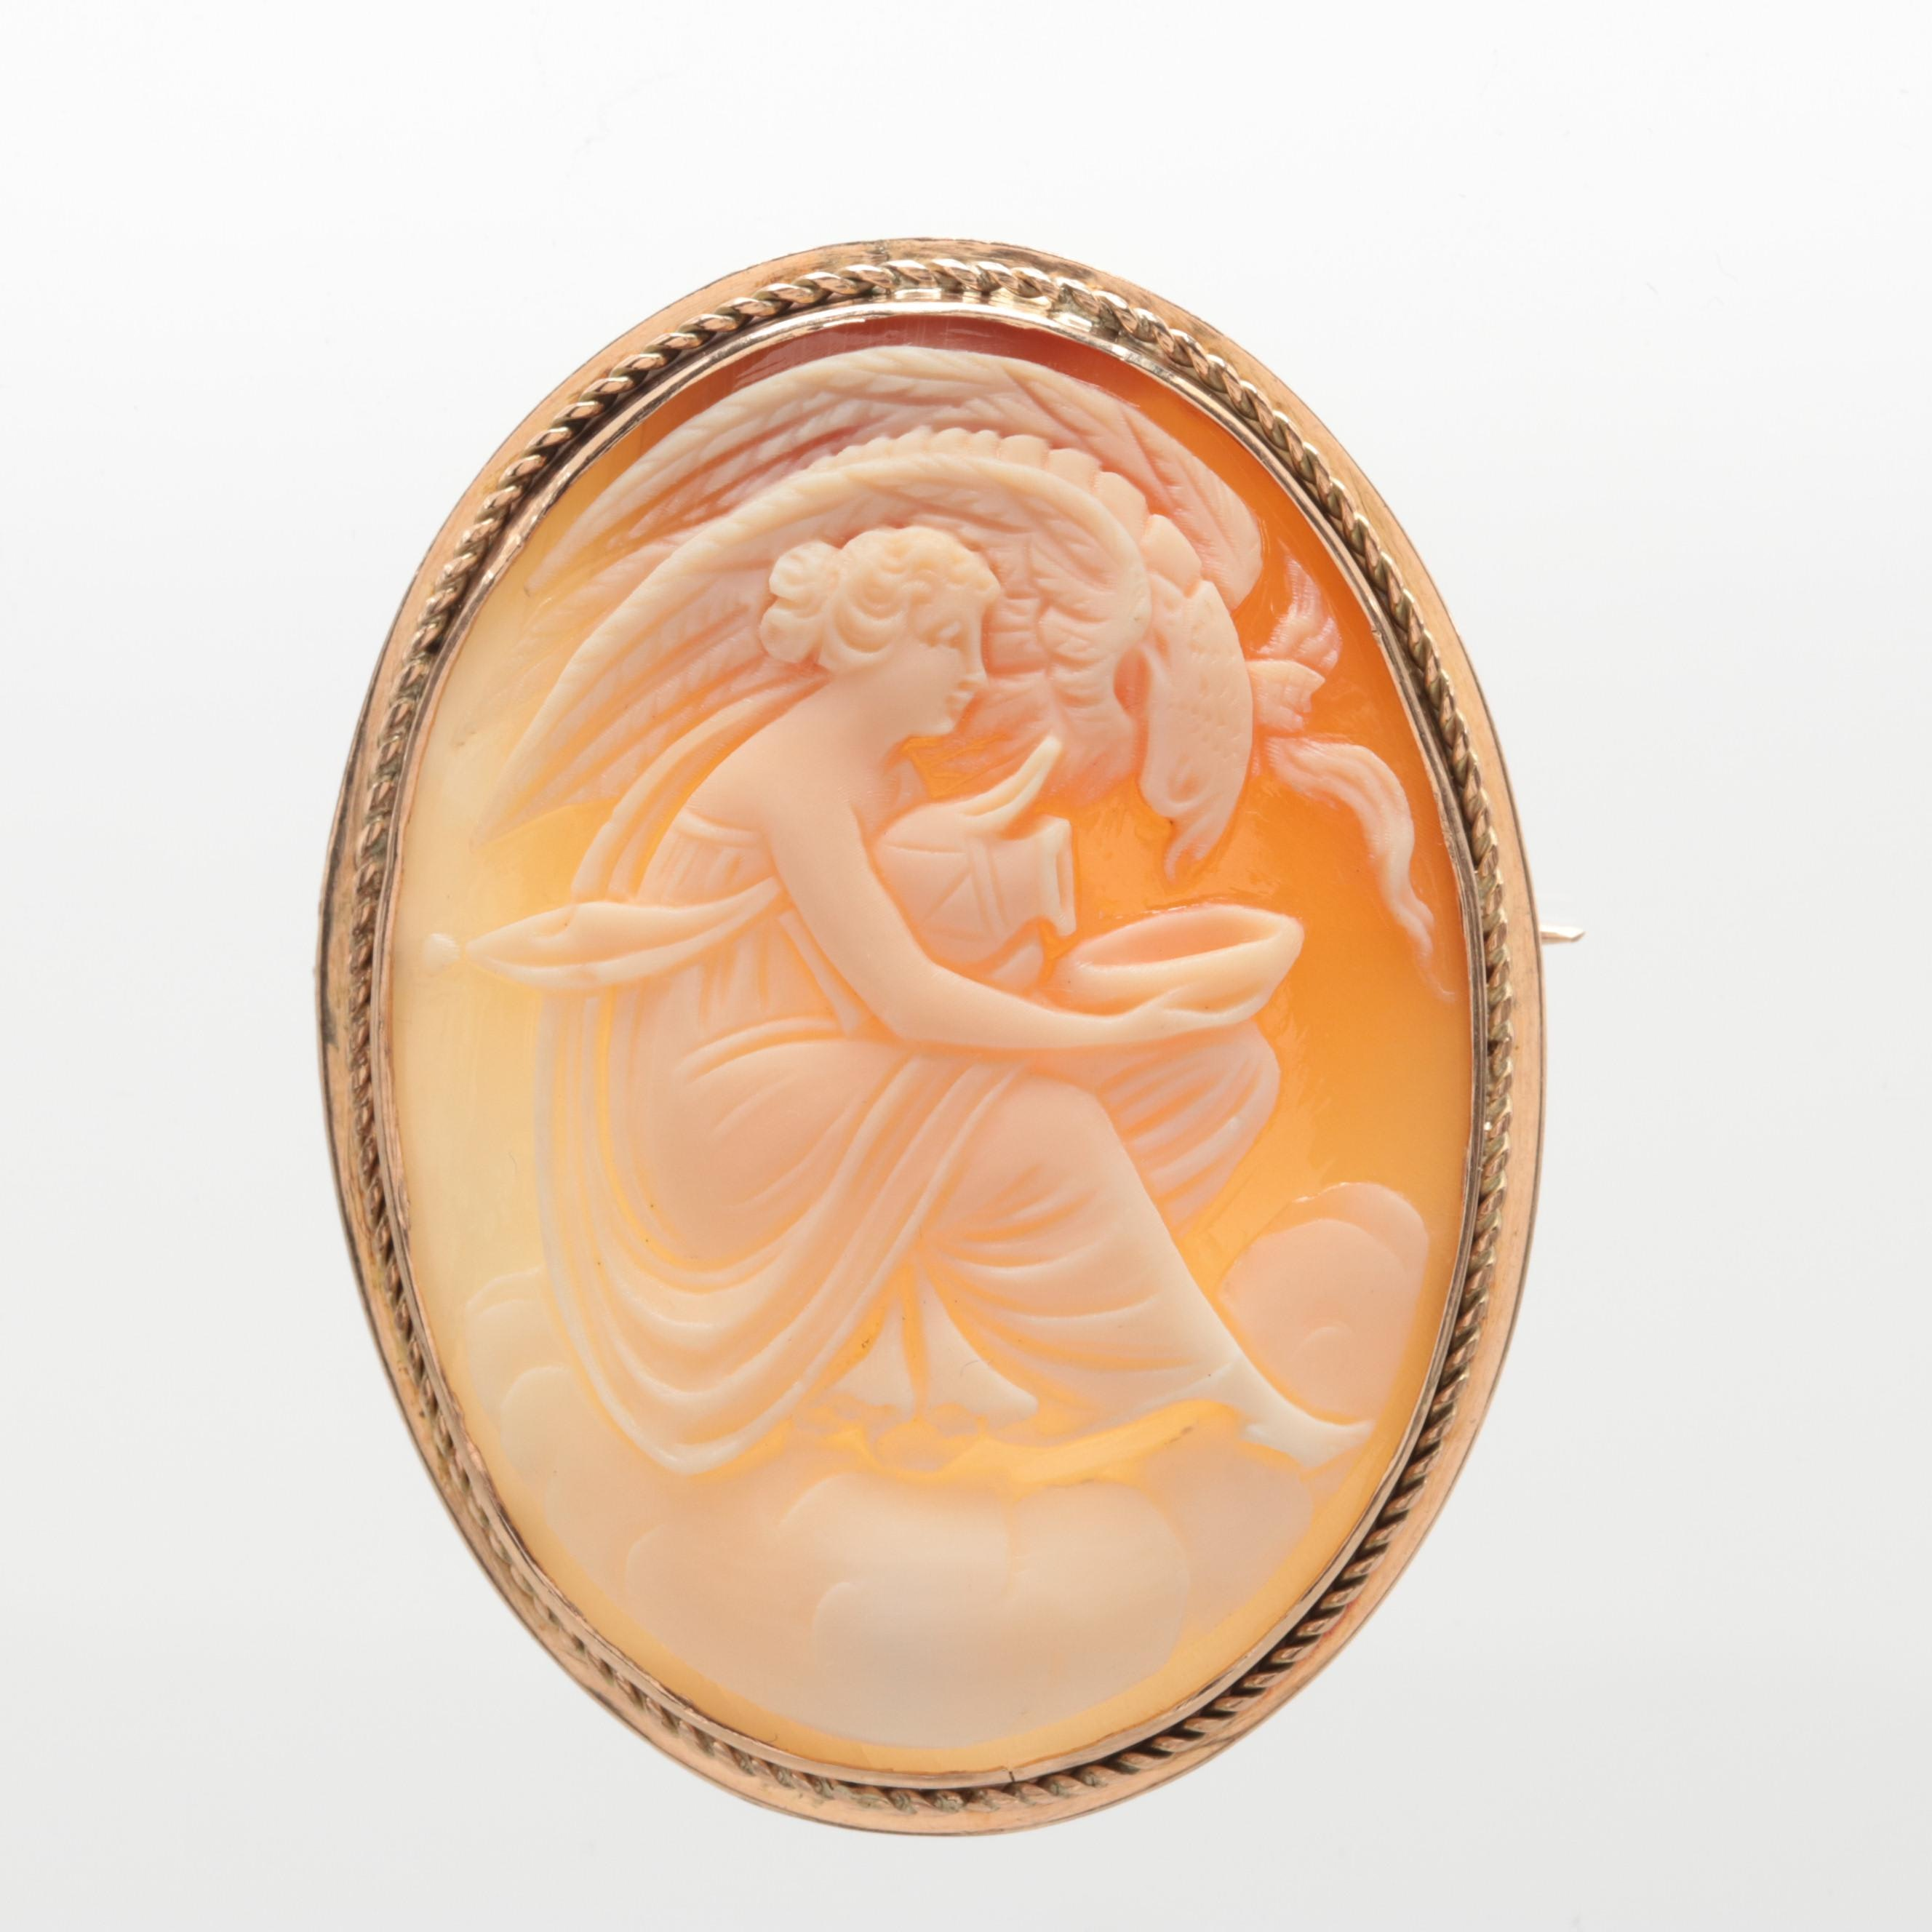 Circa Early 1900's 10K Yellow Gold Shell Cameo Brooch Depicting Hebe with Eagle